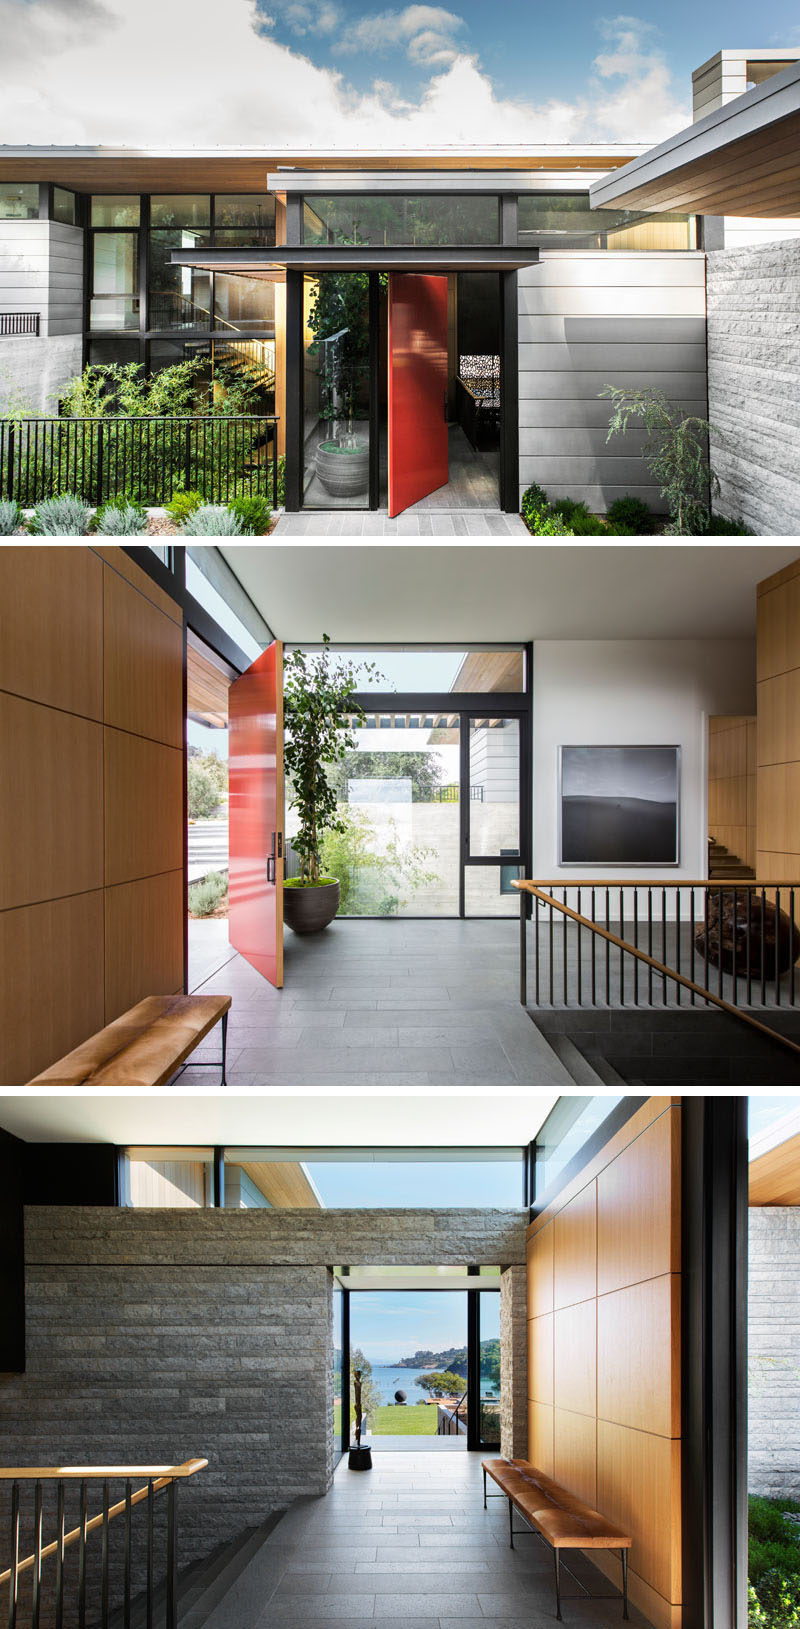 A bold red pivoting front door welcomes you to this modern house, and once inside, there's an entryway that provides access to two separate sets of stairs.